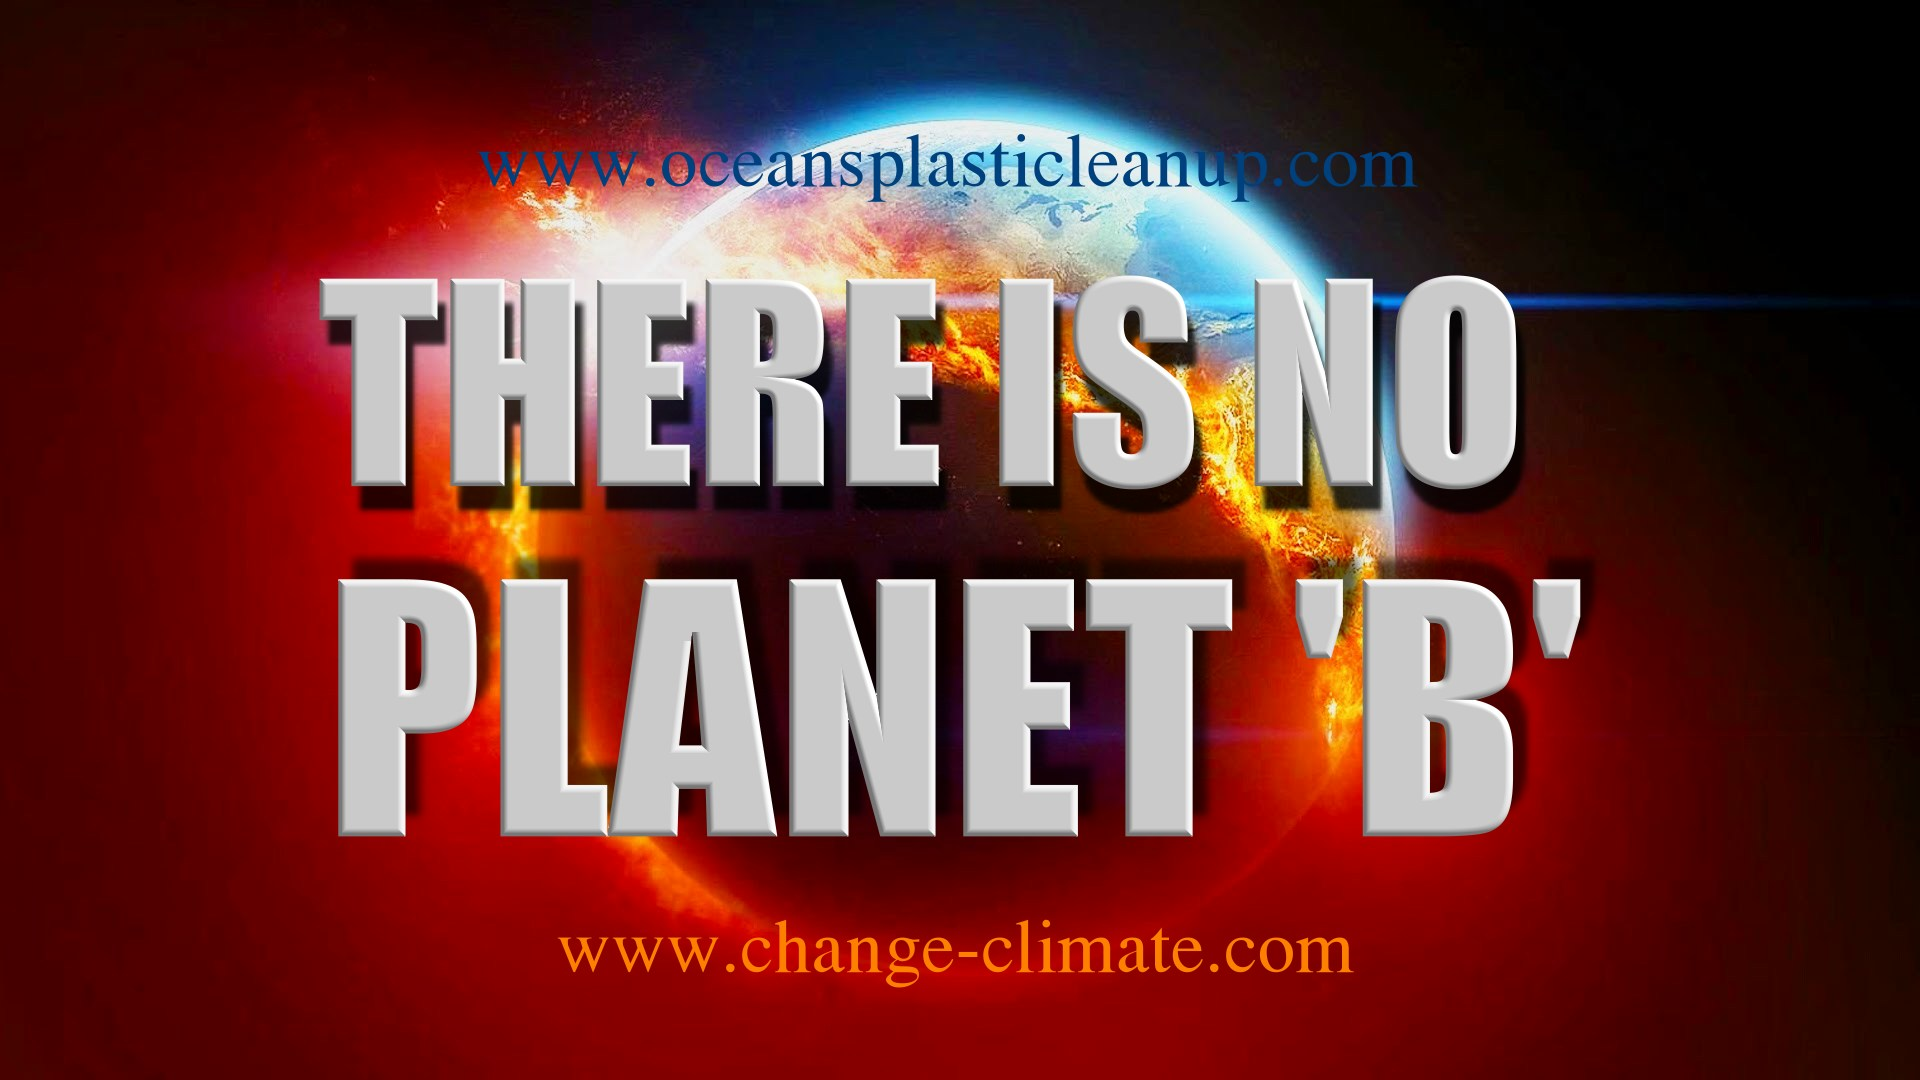 There is no planet B at the moment, so keep dreaming and perish or act to save what we have